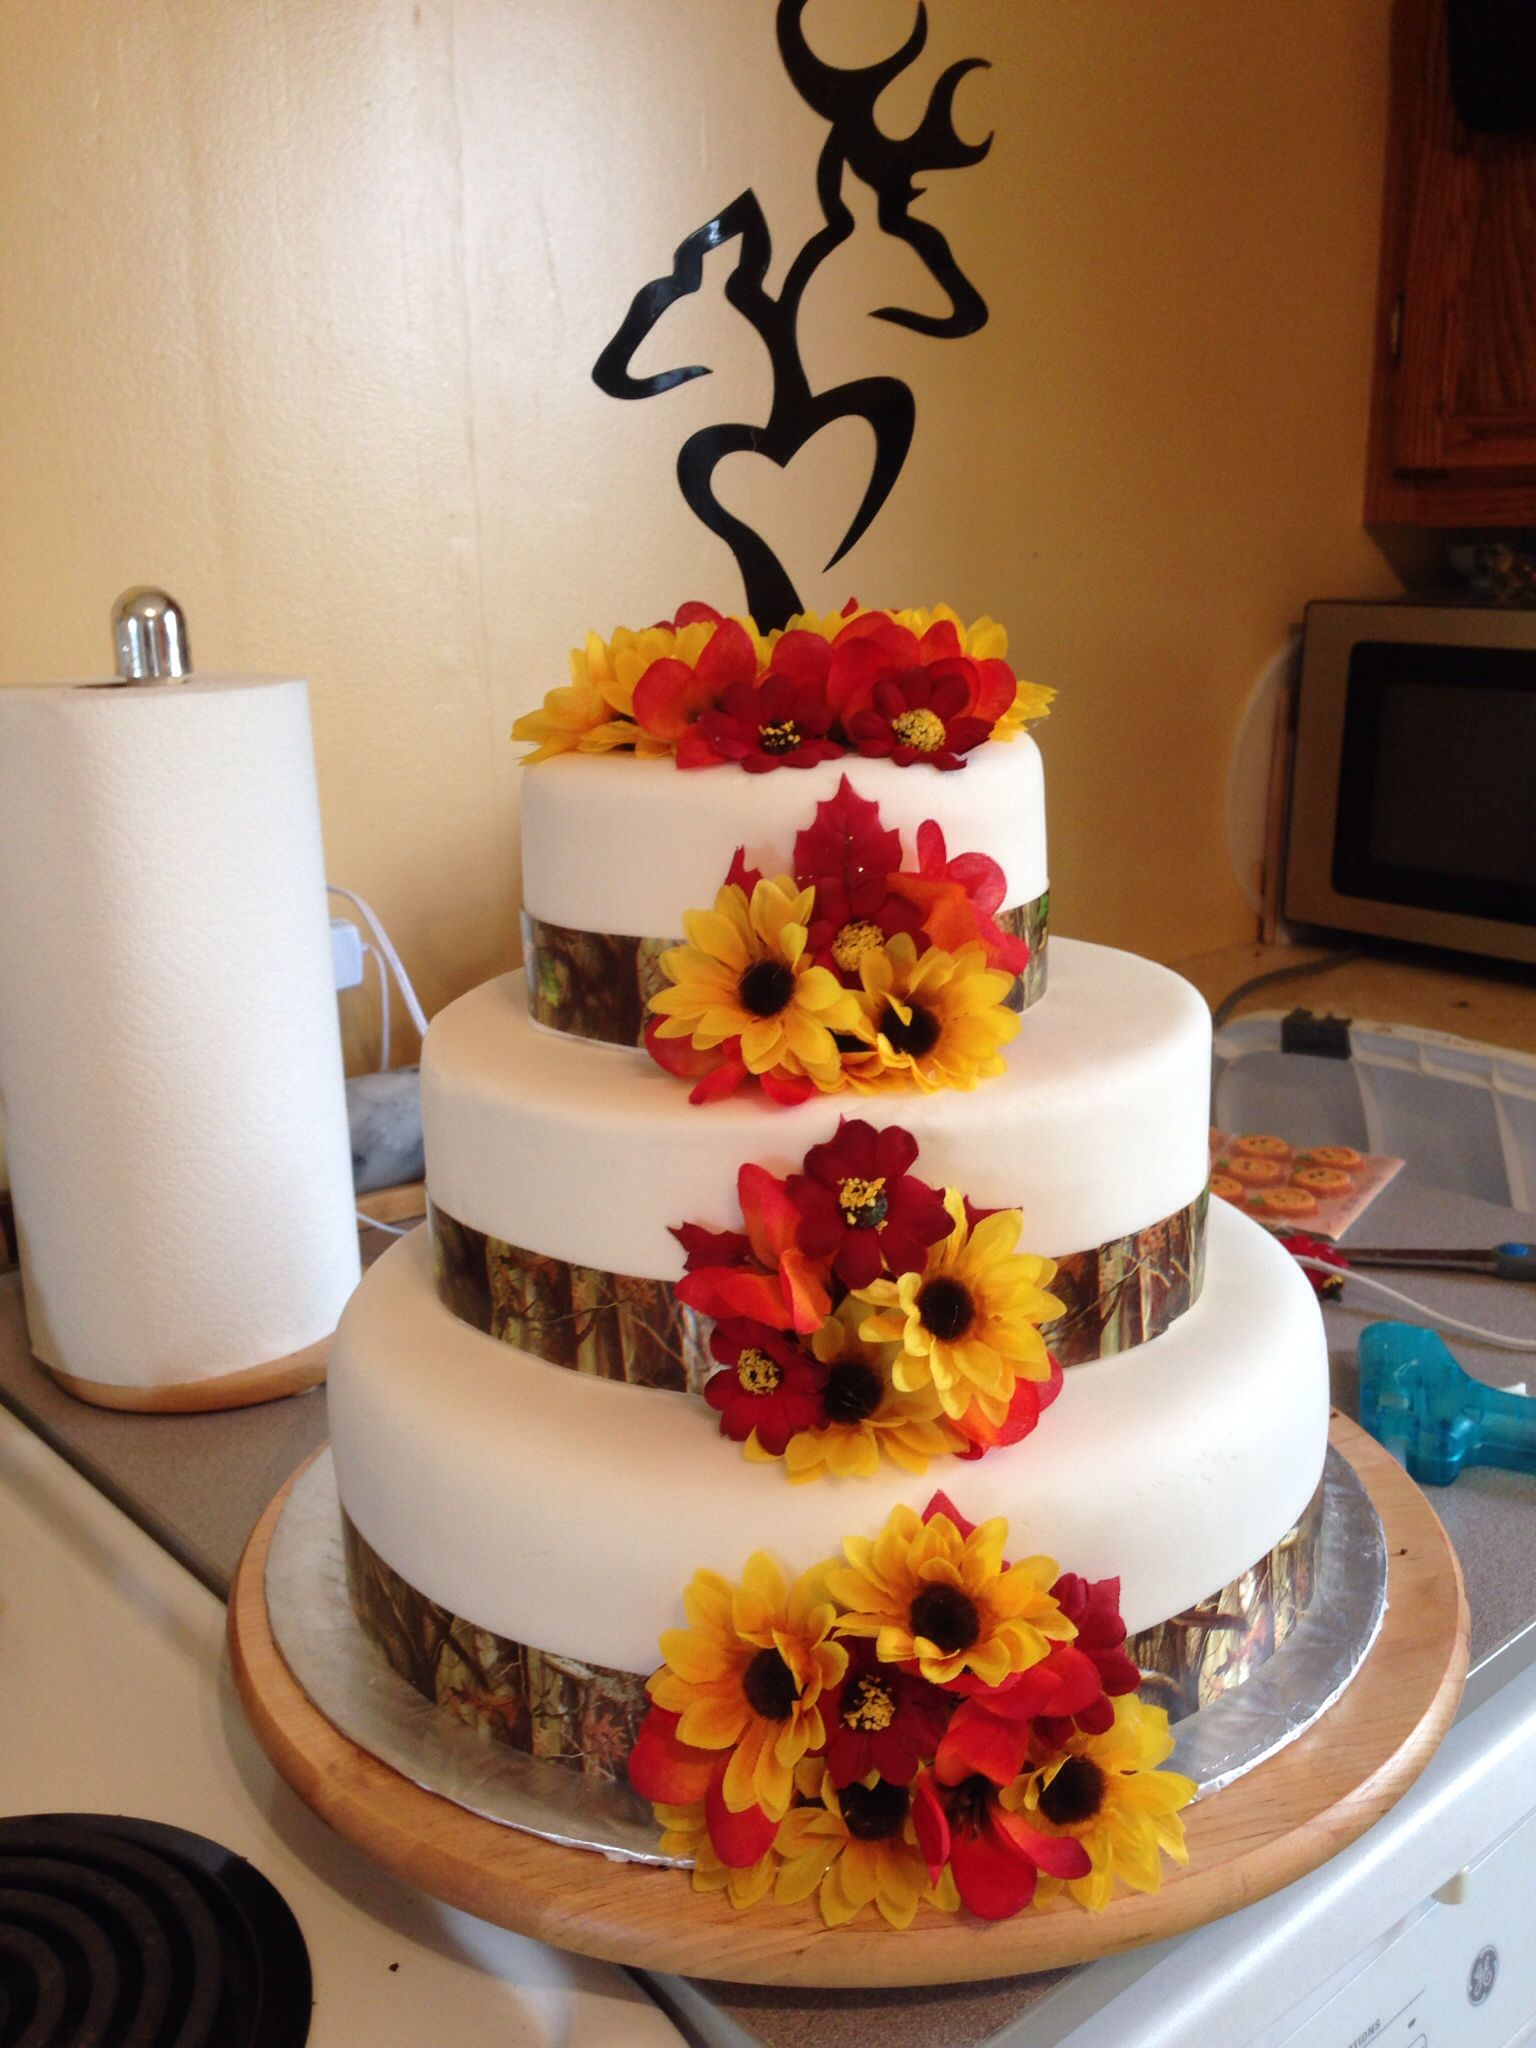 32 Orange   Yellow Fall Wedding Cakes with Maple Leaves   Pumpkins     Autumn camo wedding cake